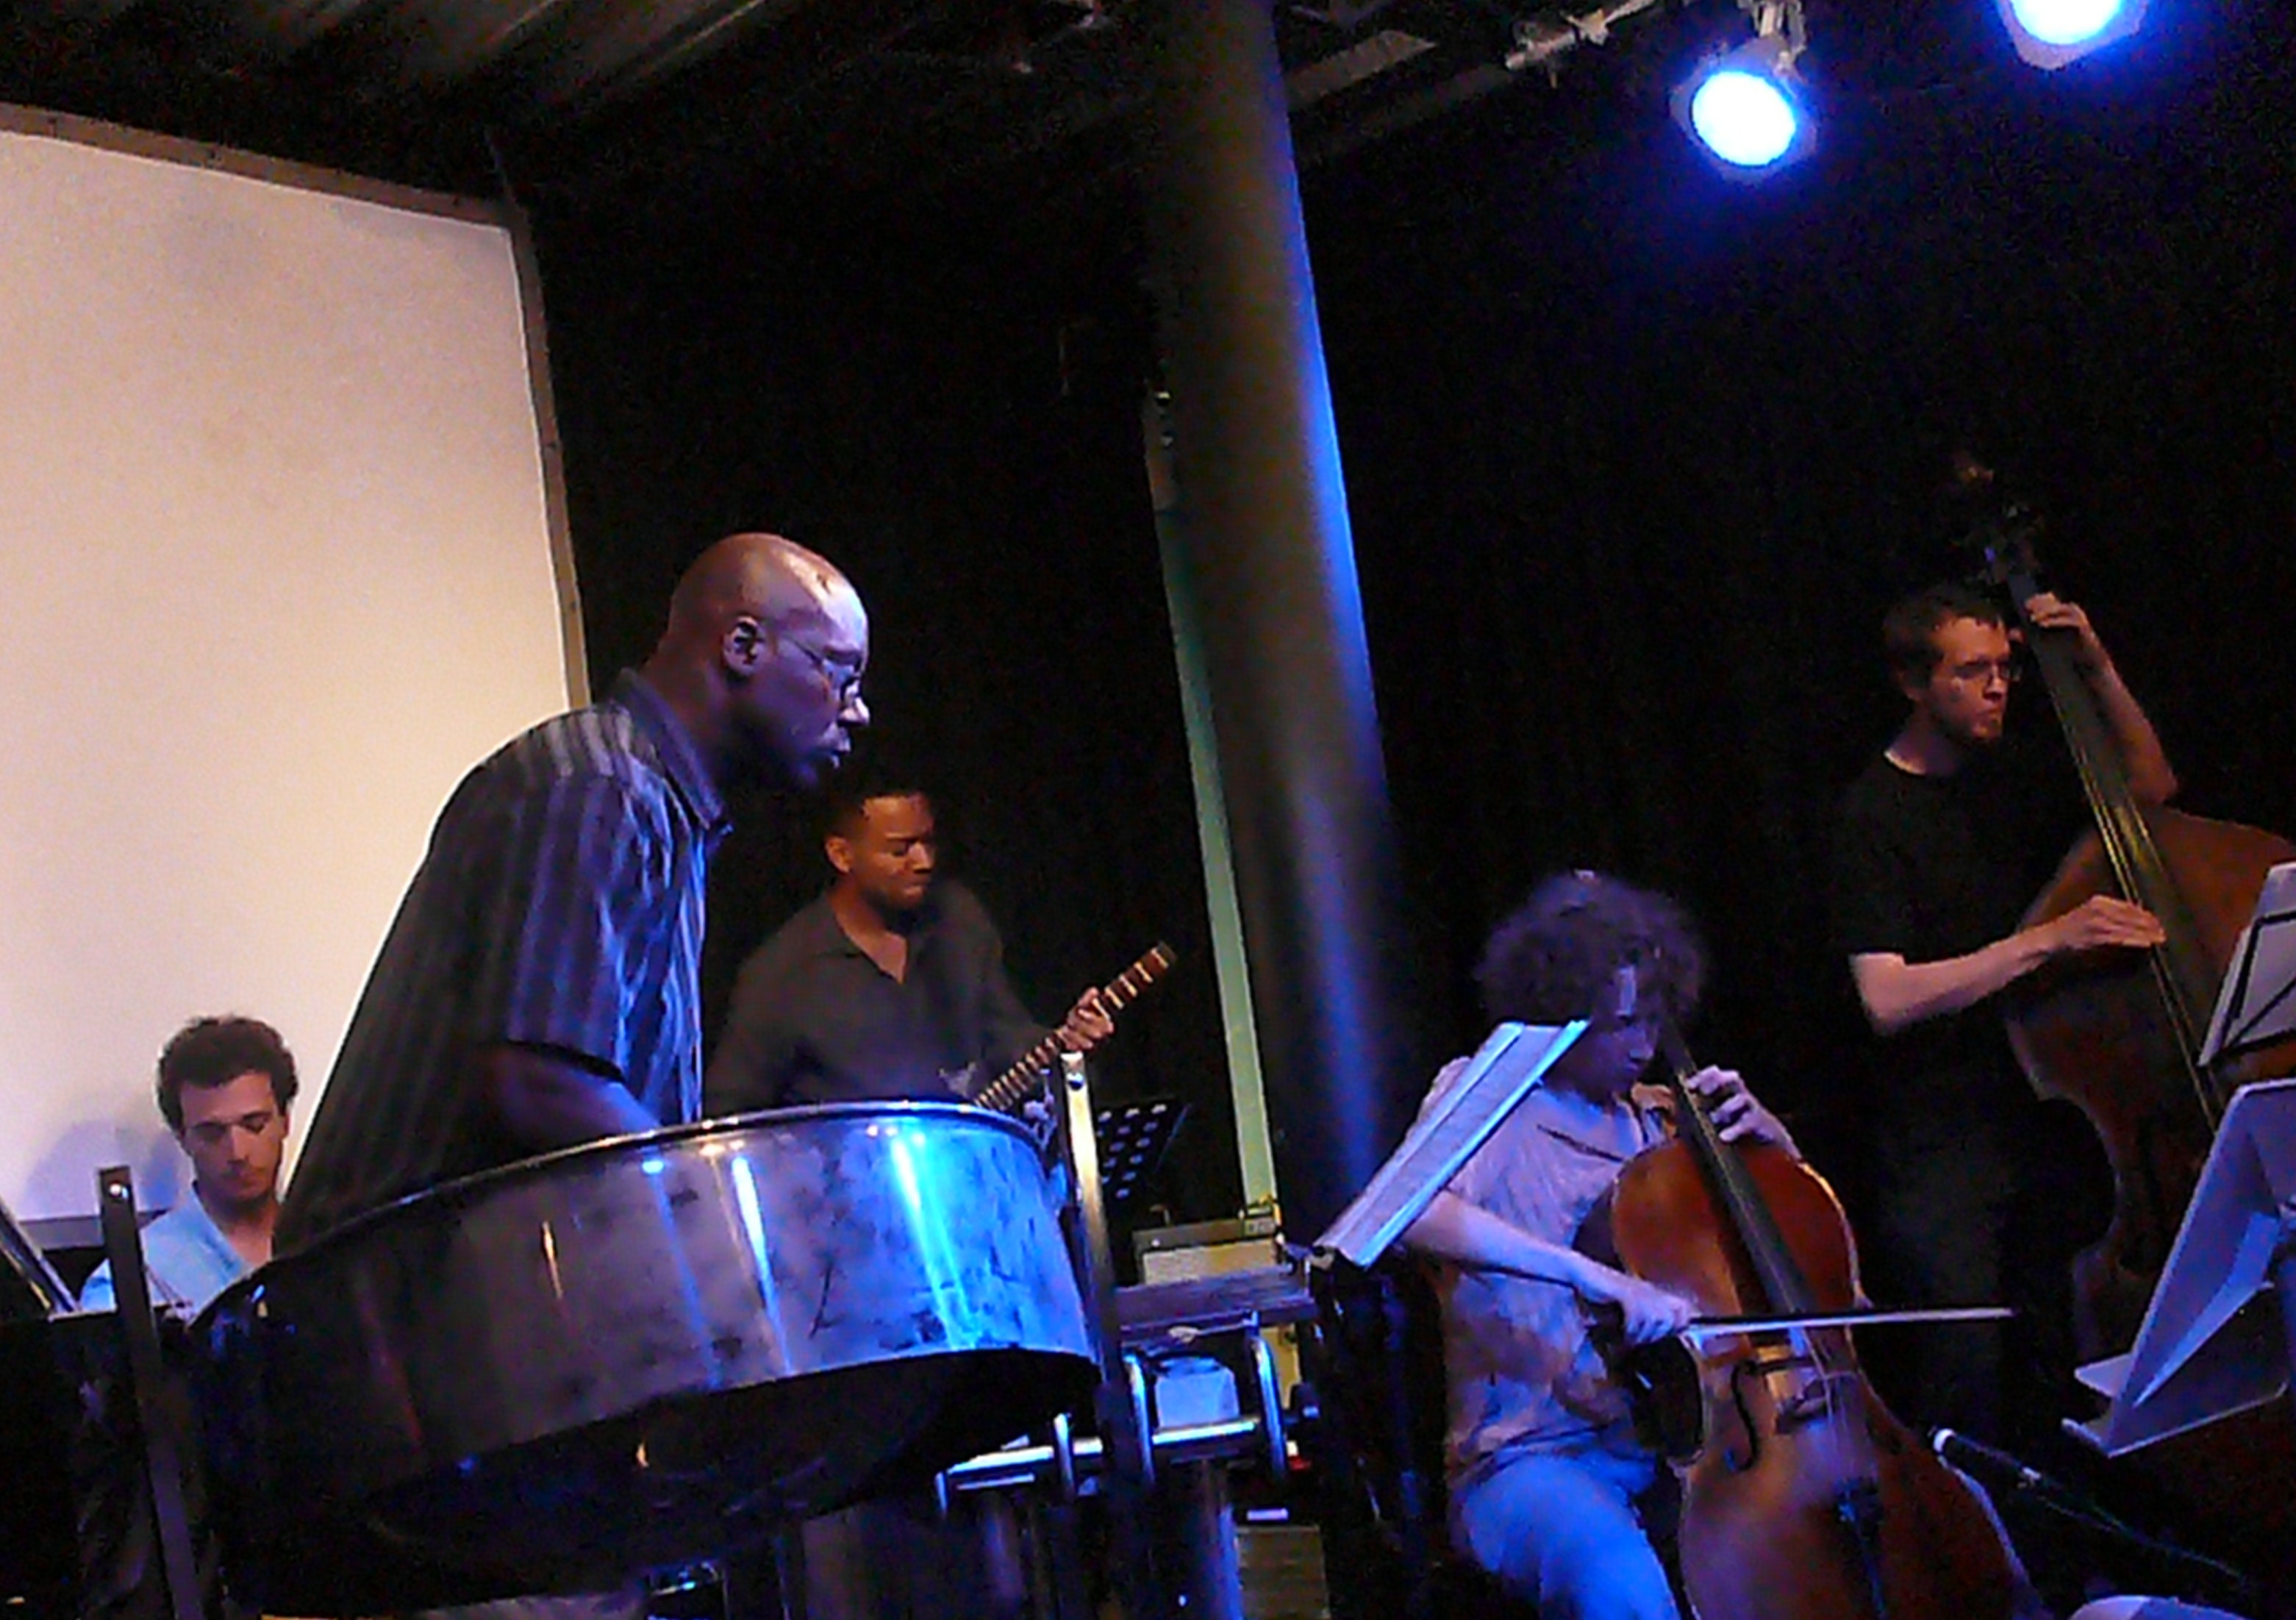 Javier Carmona, Orphy Robinson, Otto Fischer, Hannah Marshall, Dominic Lash at the Vortex, London in July 2010